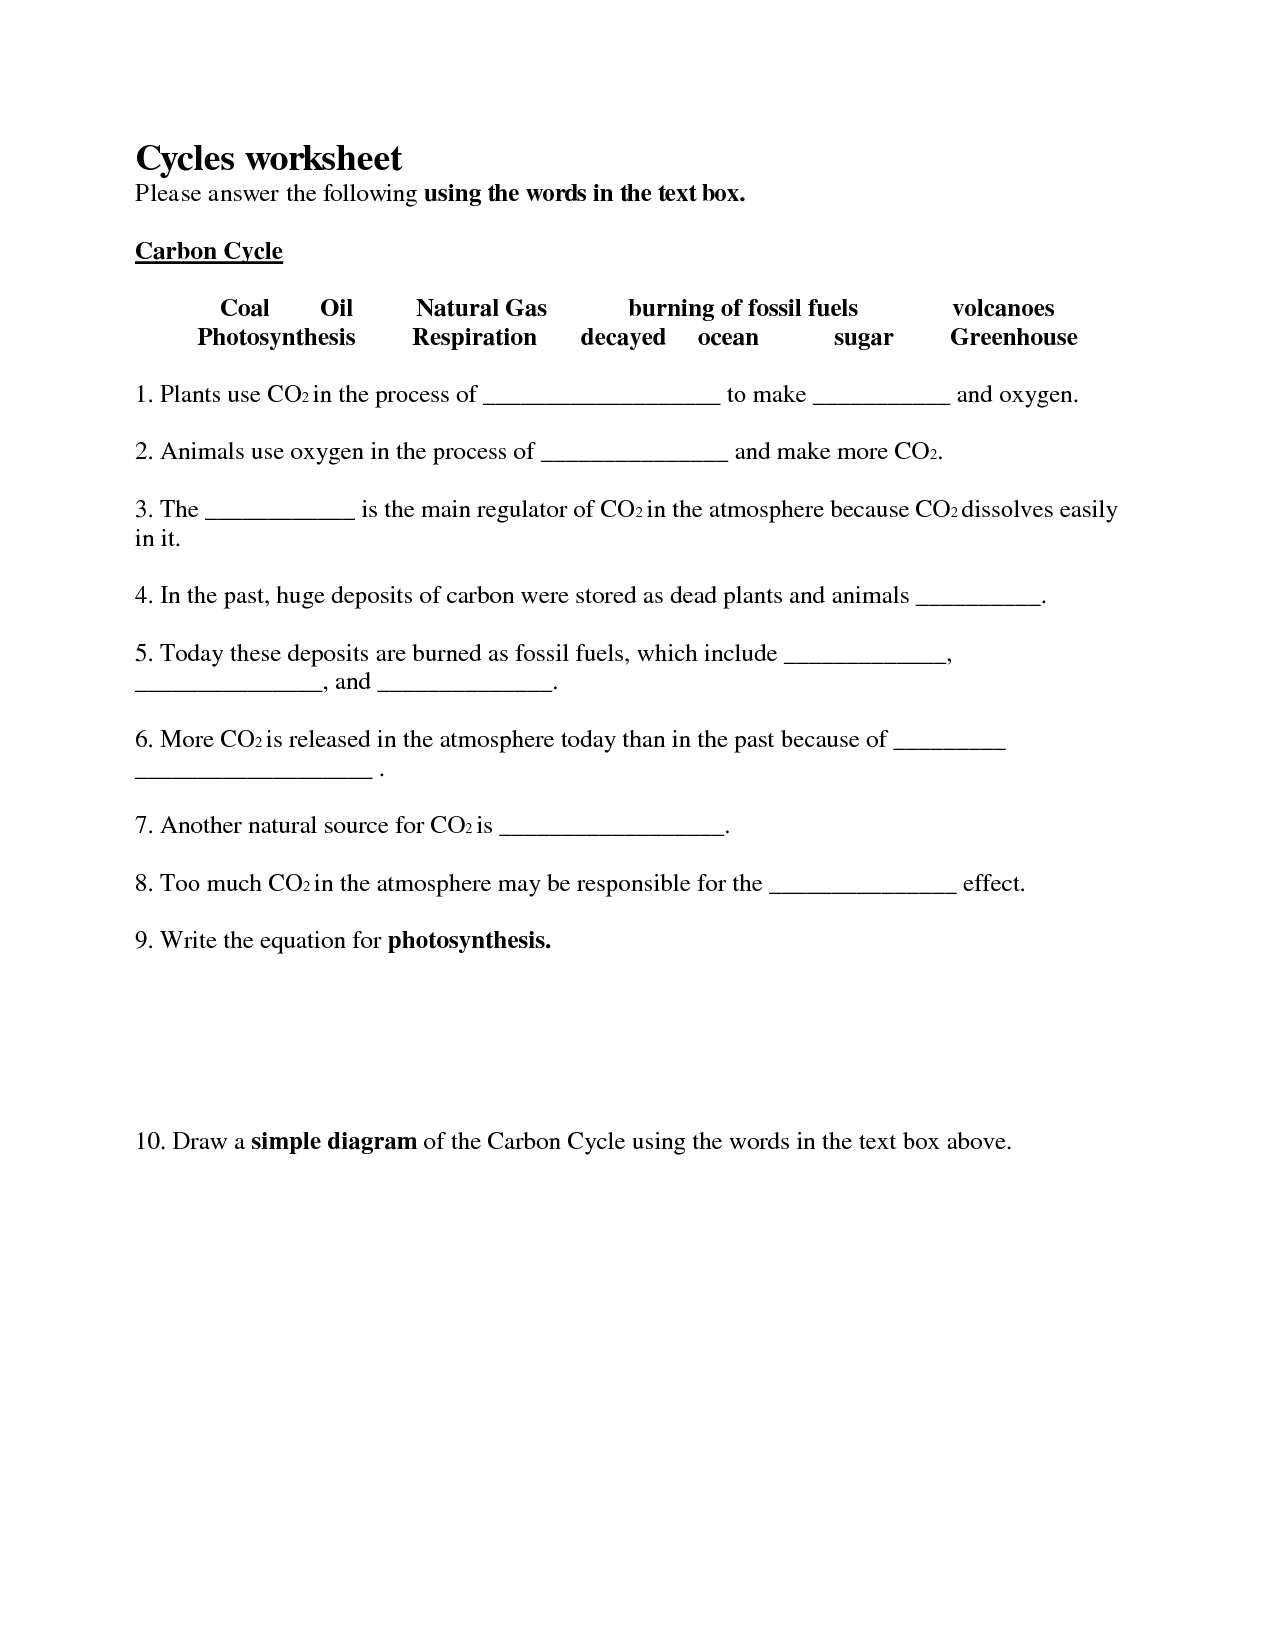 Worksheets Cycles Worksheet Answers Cheatslist Free